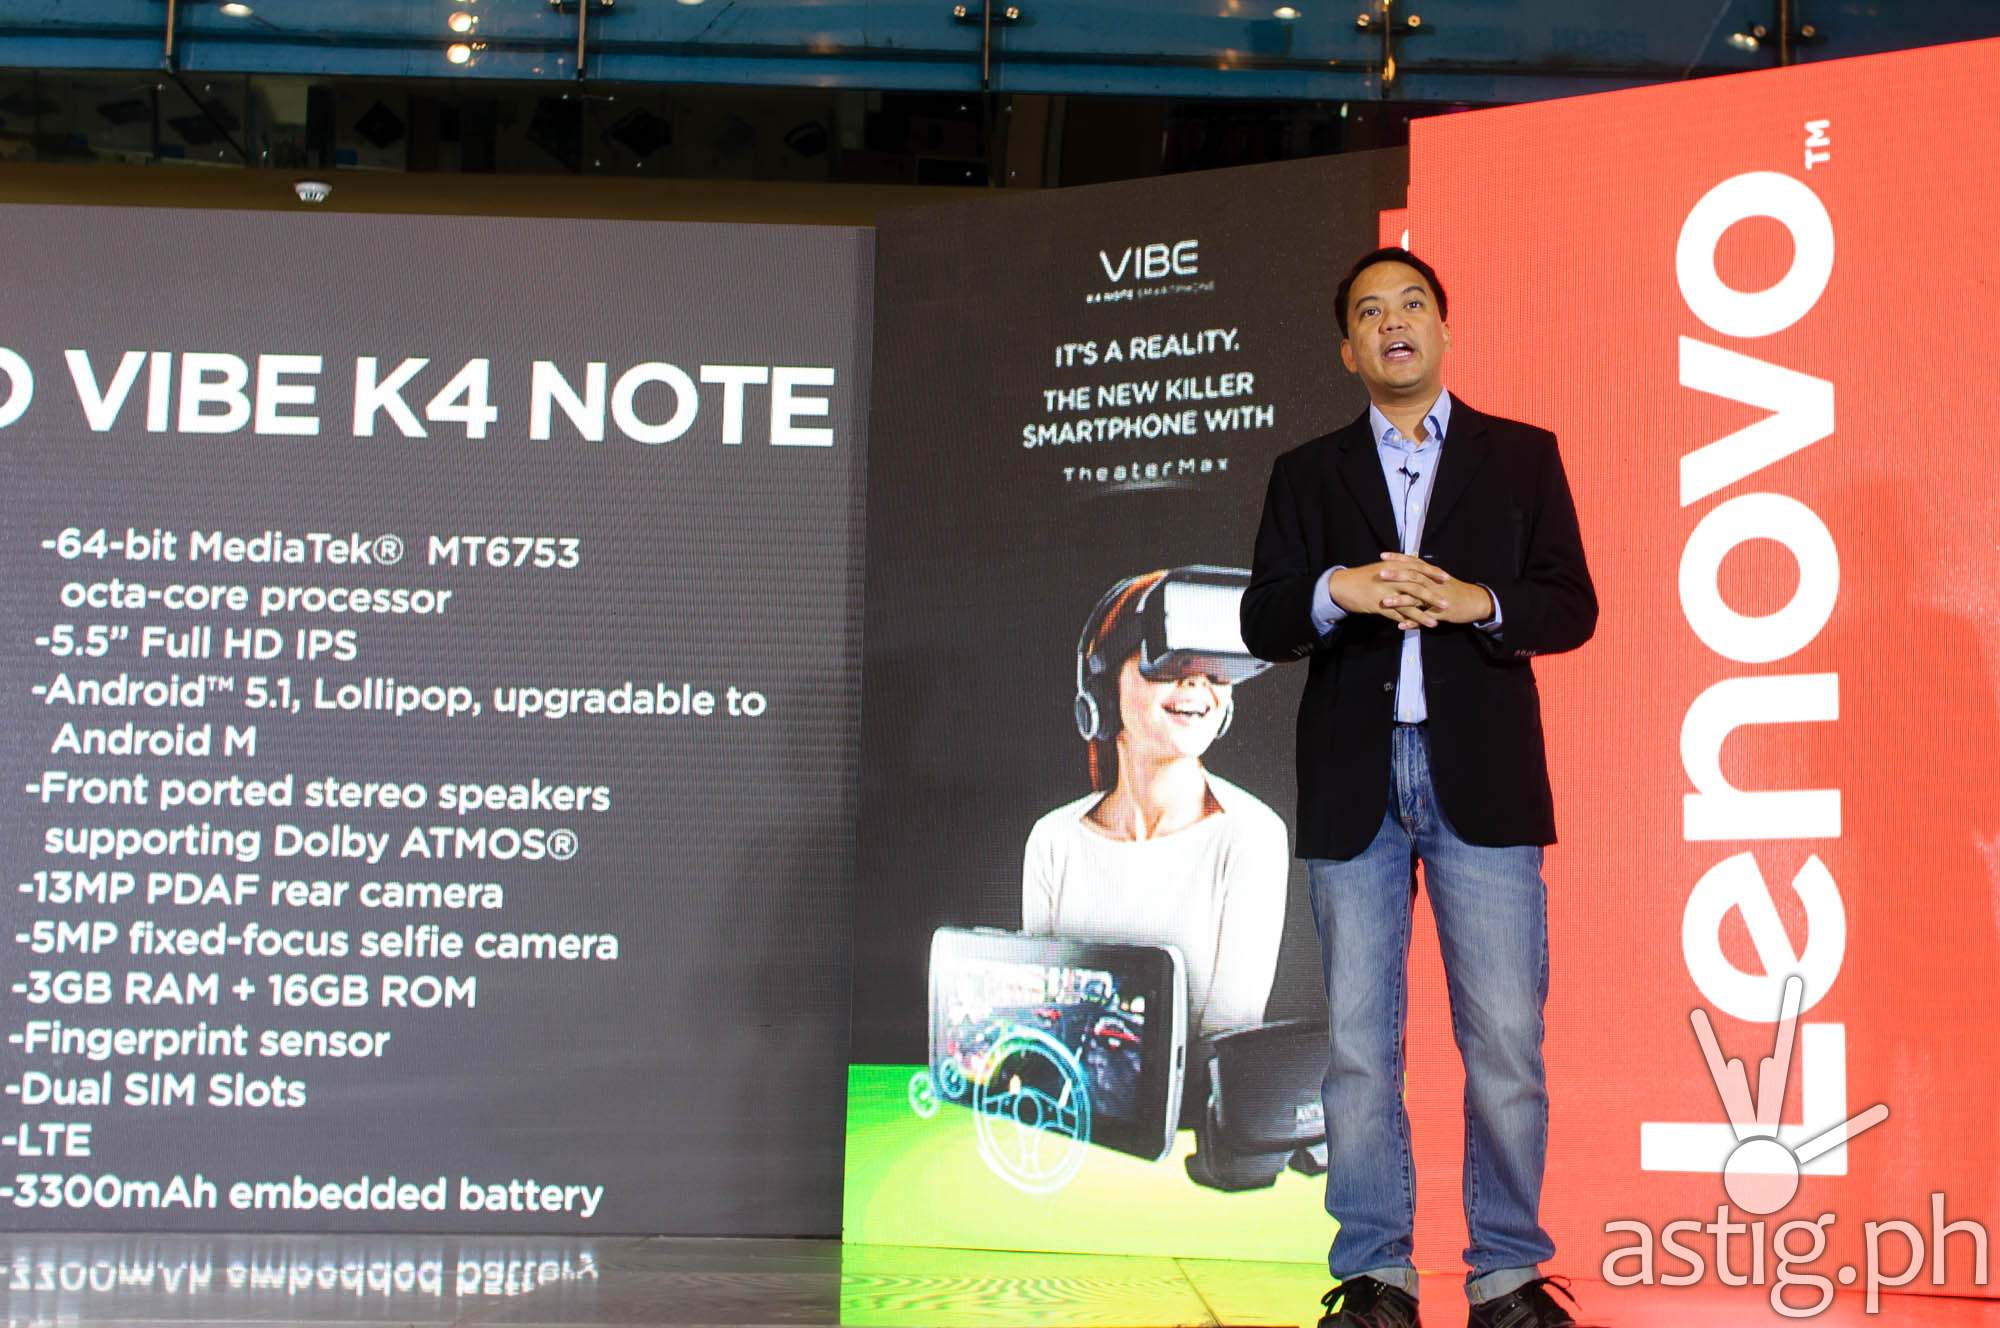 Vincent Dela Cruz, Marketing Manager, Lenovo Philippines, showcases the features of the Lenovo VIBE K4 Note at SM North EDSA